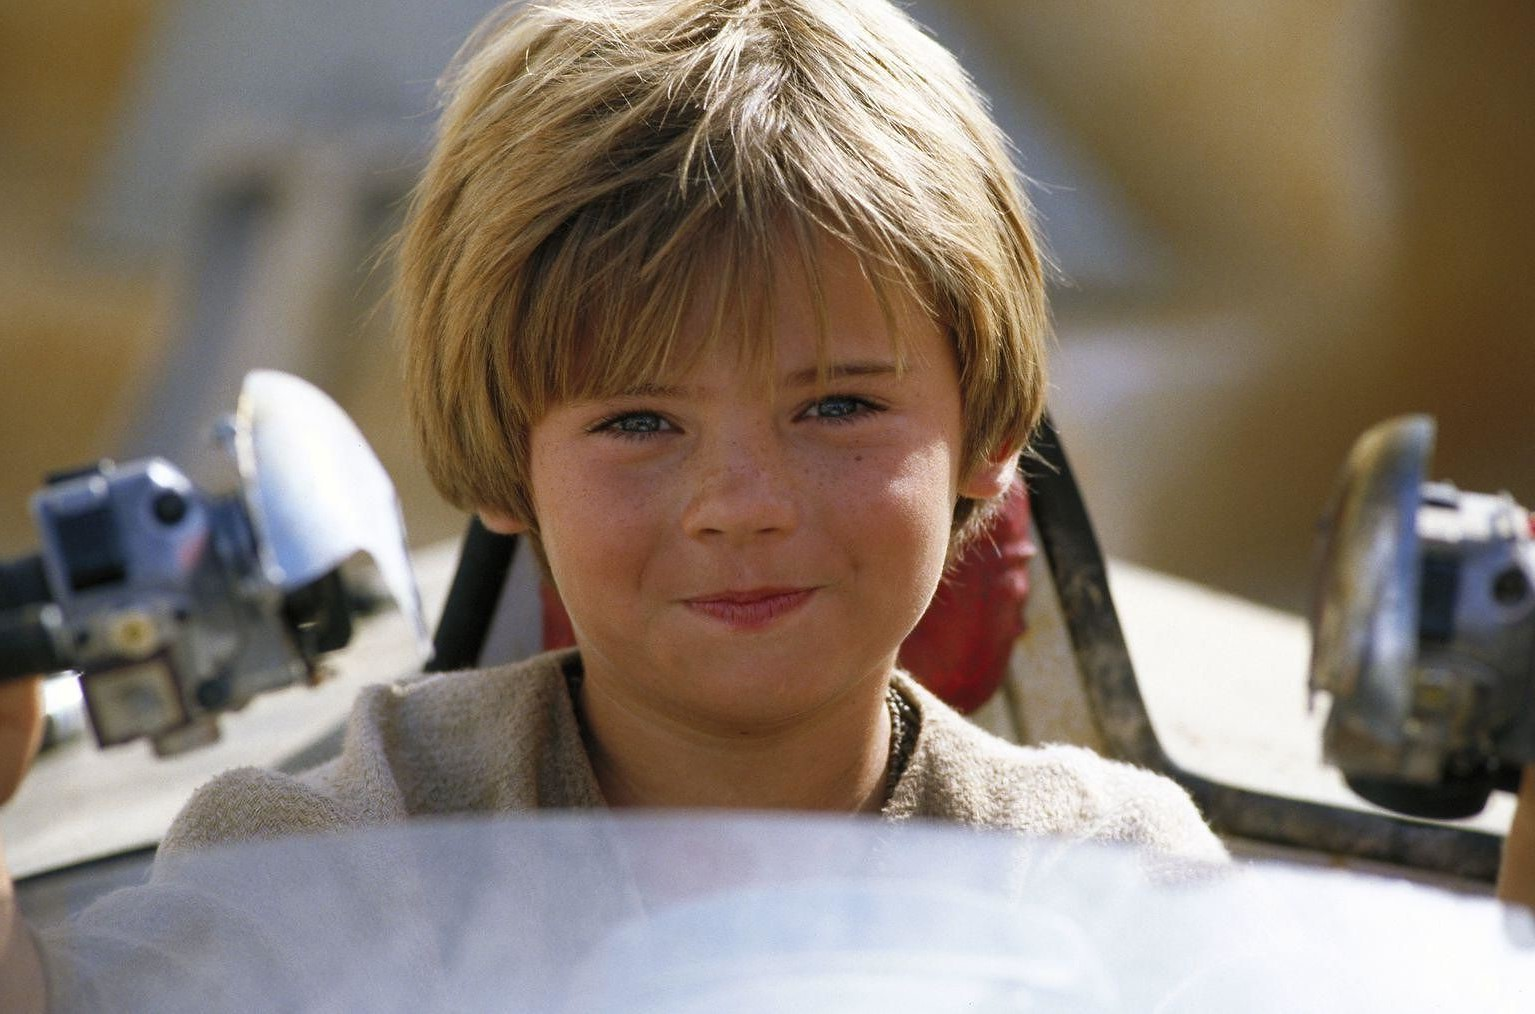 Jake Lloyd | 6 Child Actors who Ruined their Careers | Her Beauty